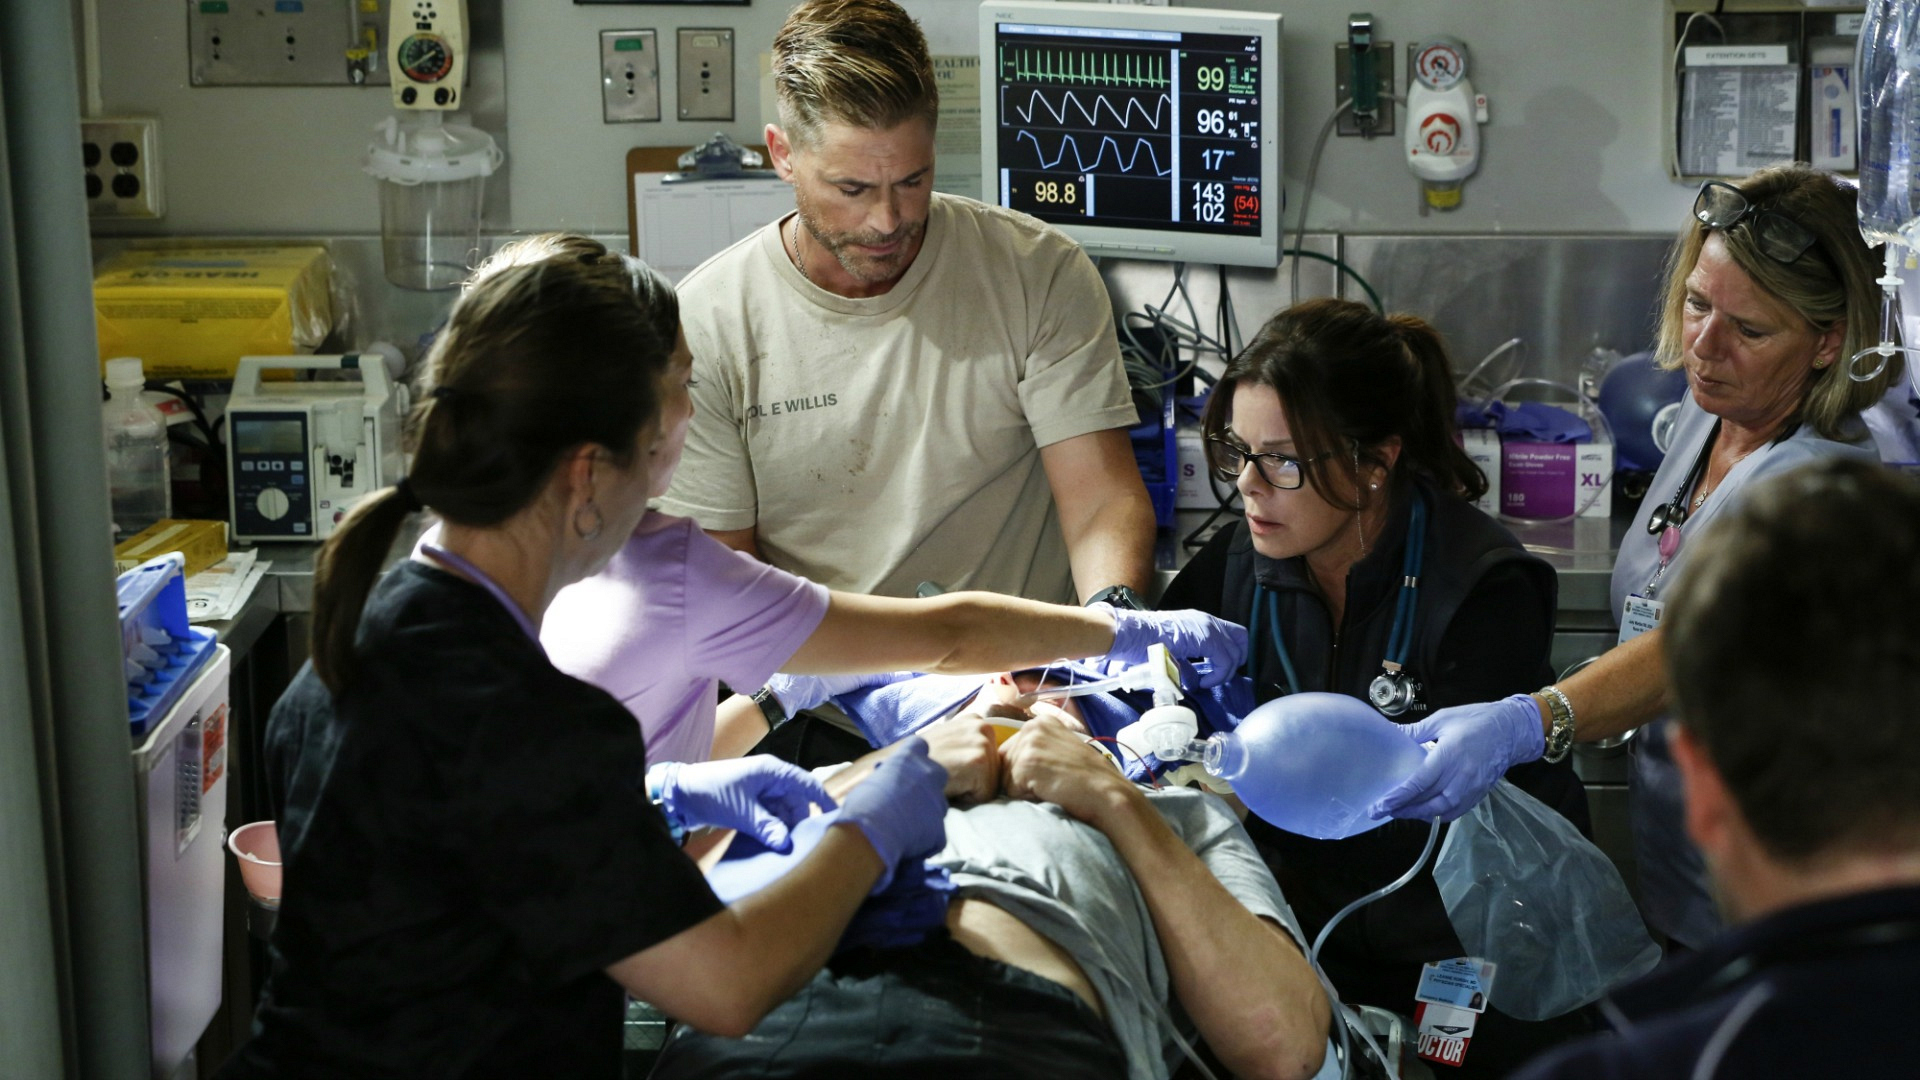 We're pumped (literally) to see more life-saving surgeries on Code Black.